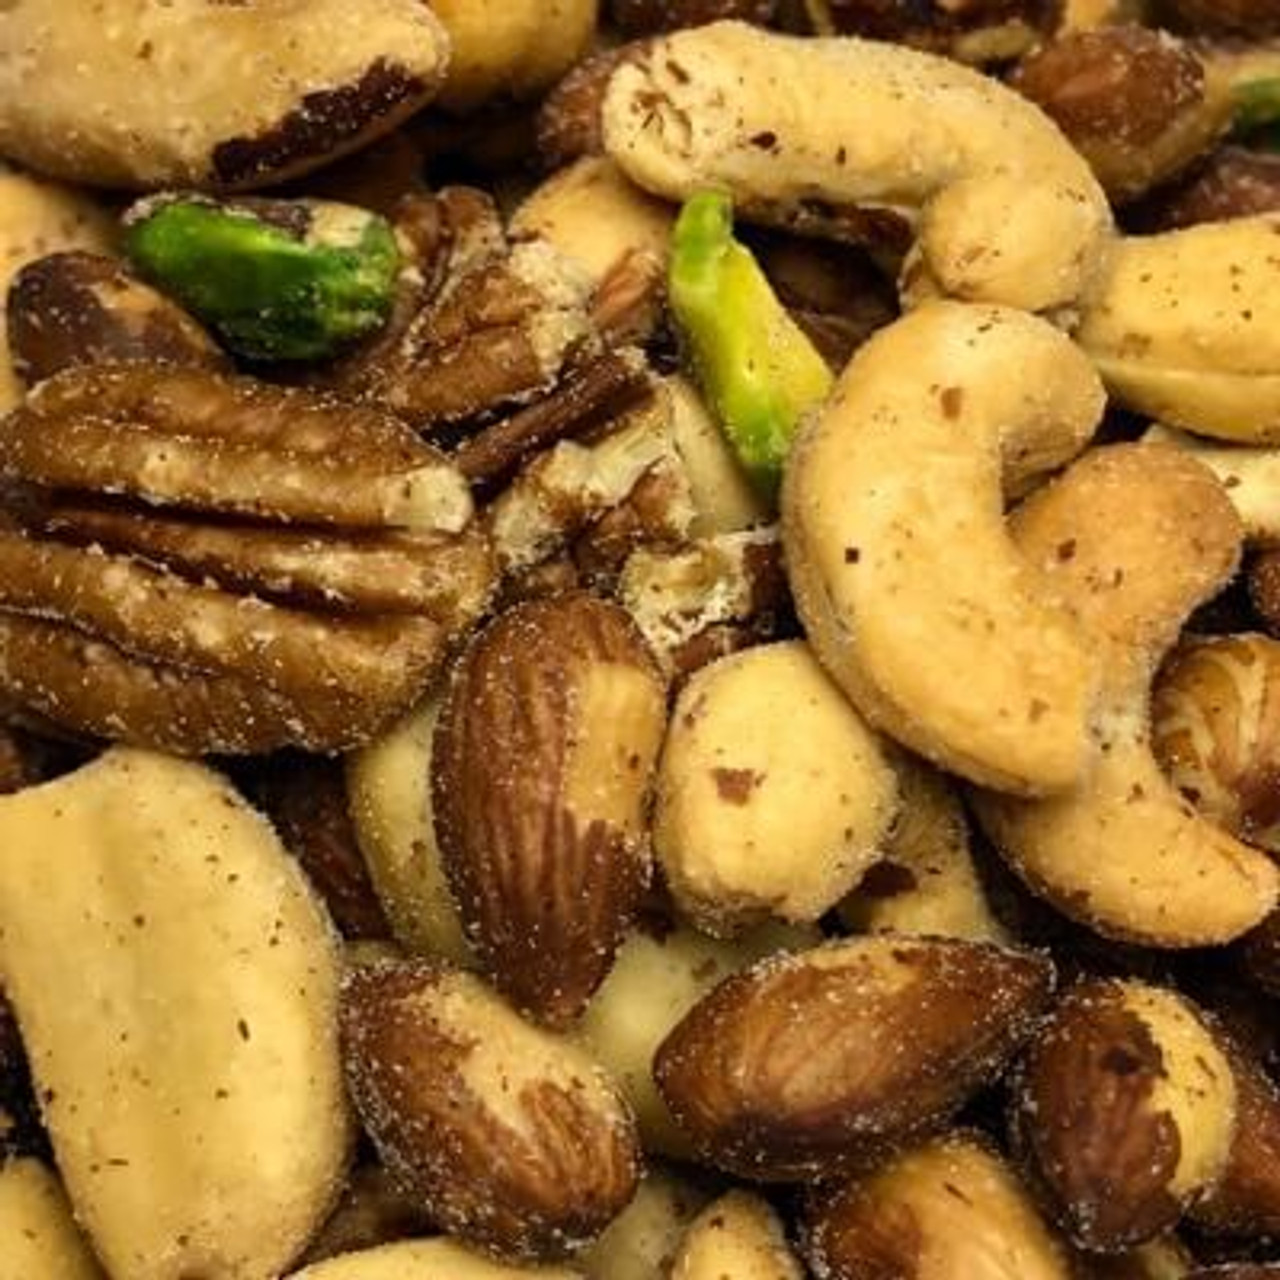 Mixed Nuts, Deluxe Shelled - Salted